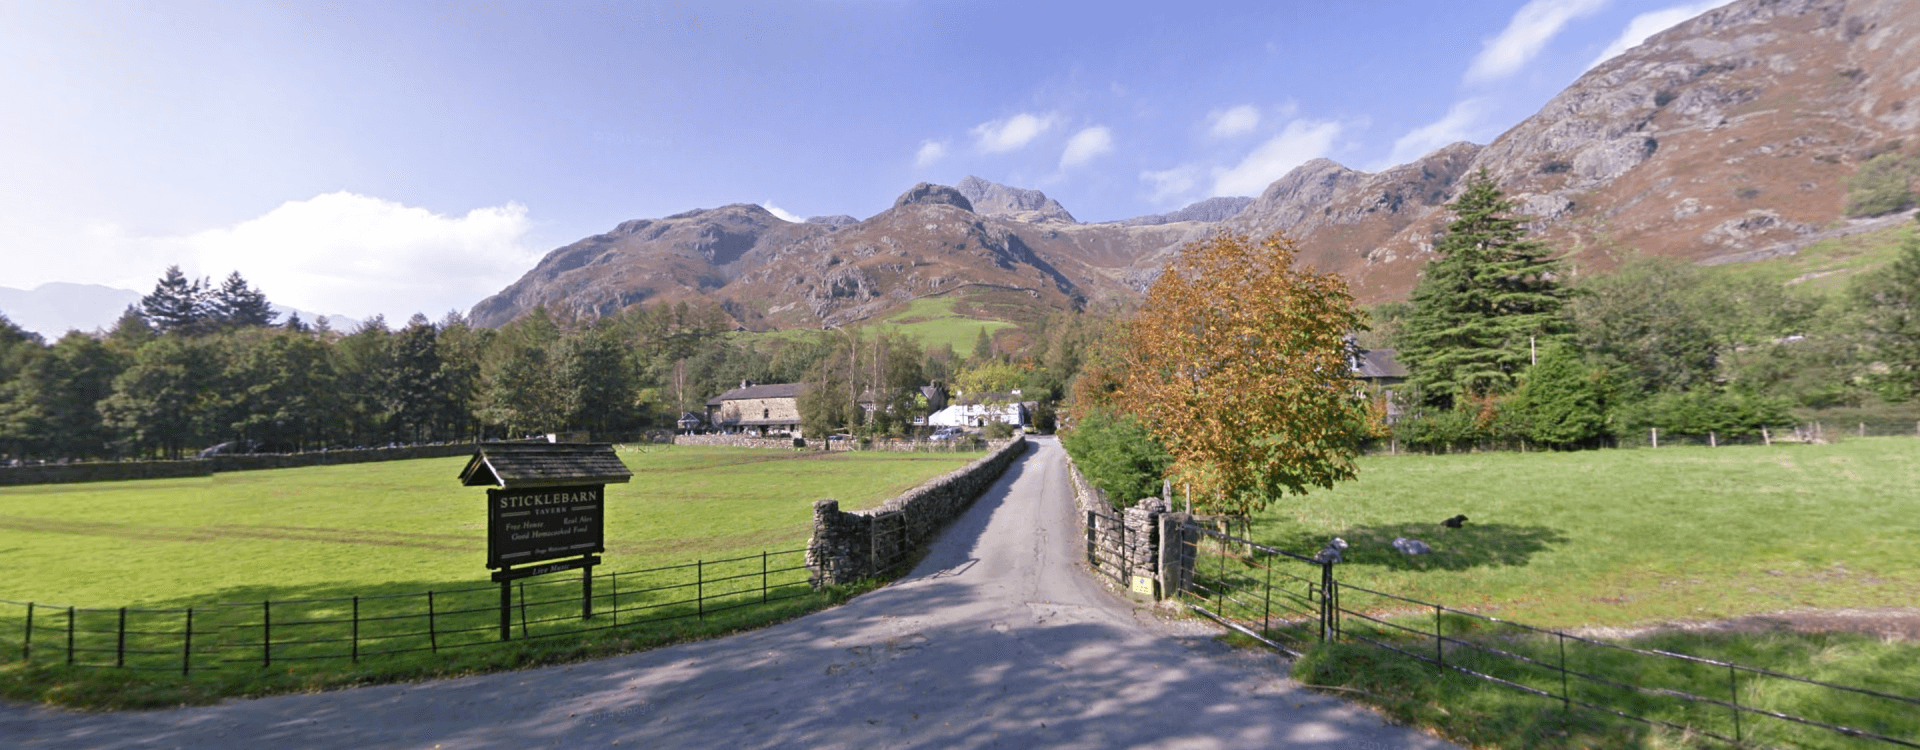 Bring your dog to Great Langdale